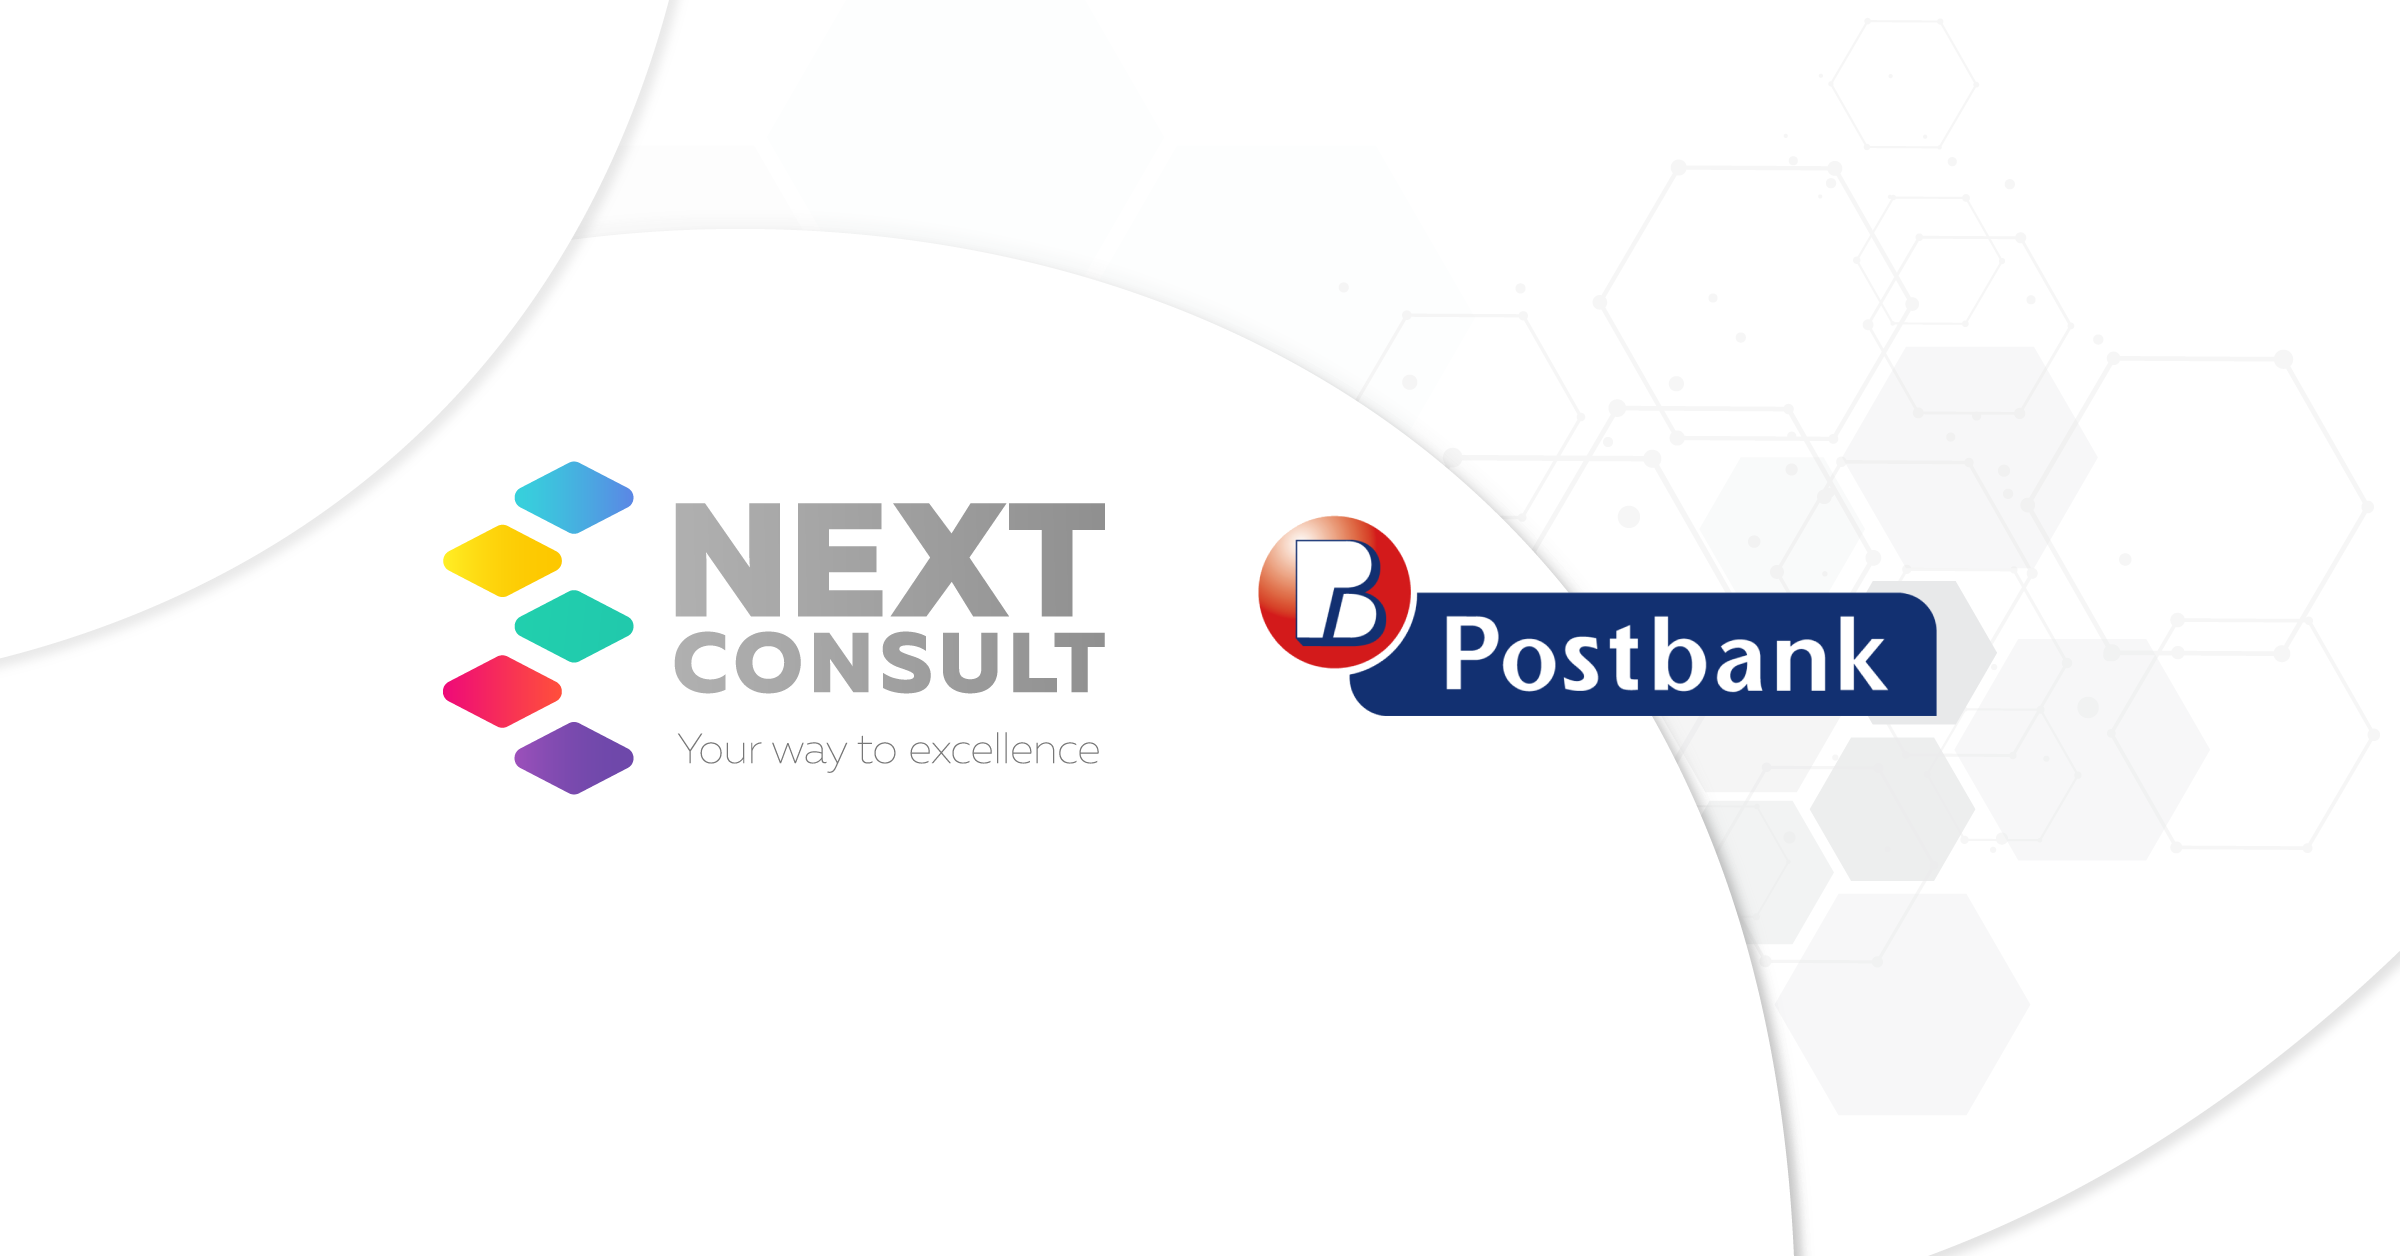 Postbank launches an innovative customer communication service